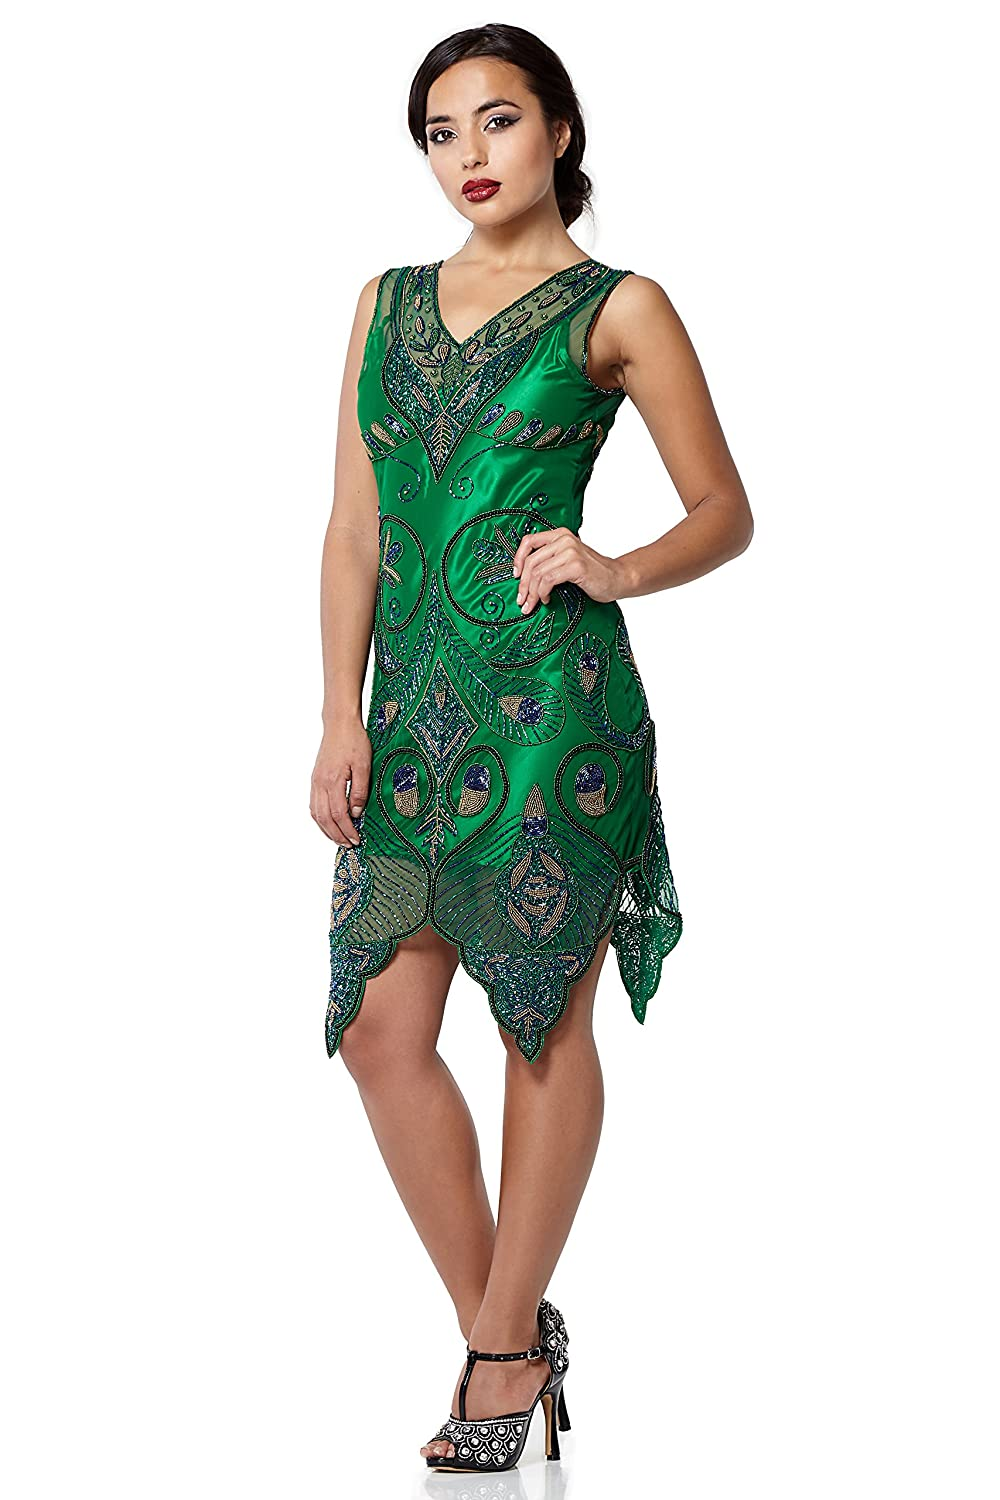 1930s Style Fashion Dresses Emma Vintage Inspired Flapper Dress in Green $130.79 AT vintagedancer.com